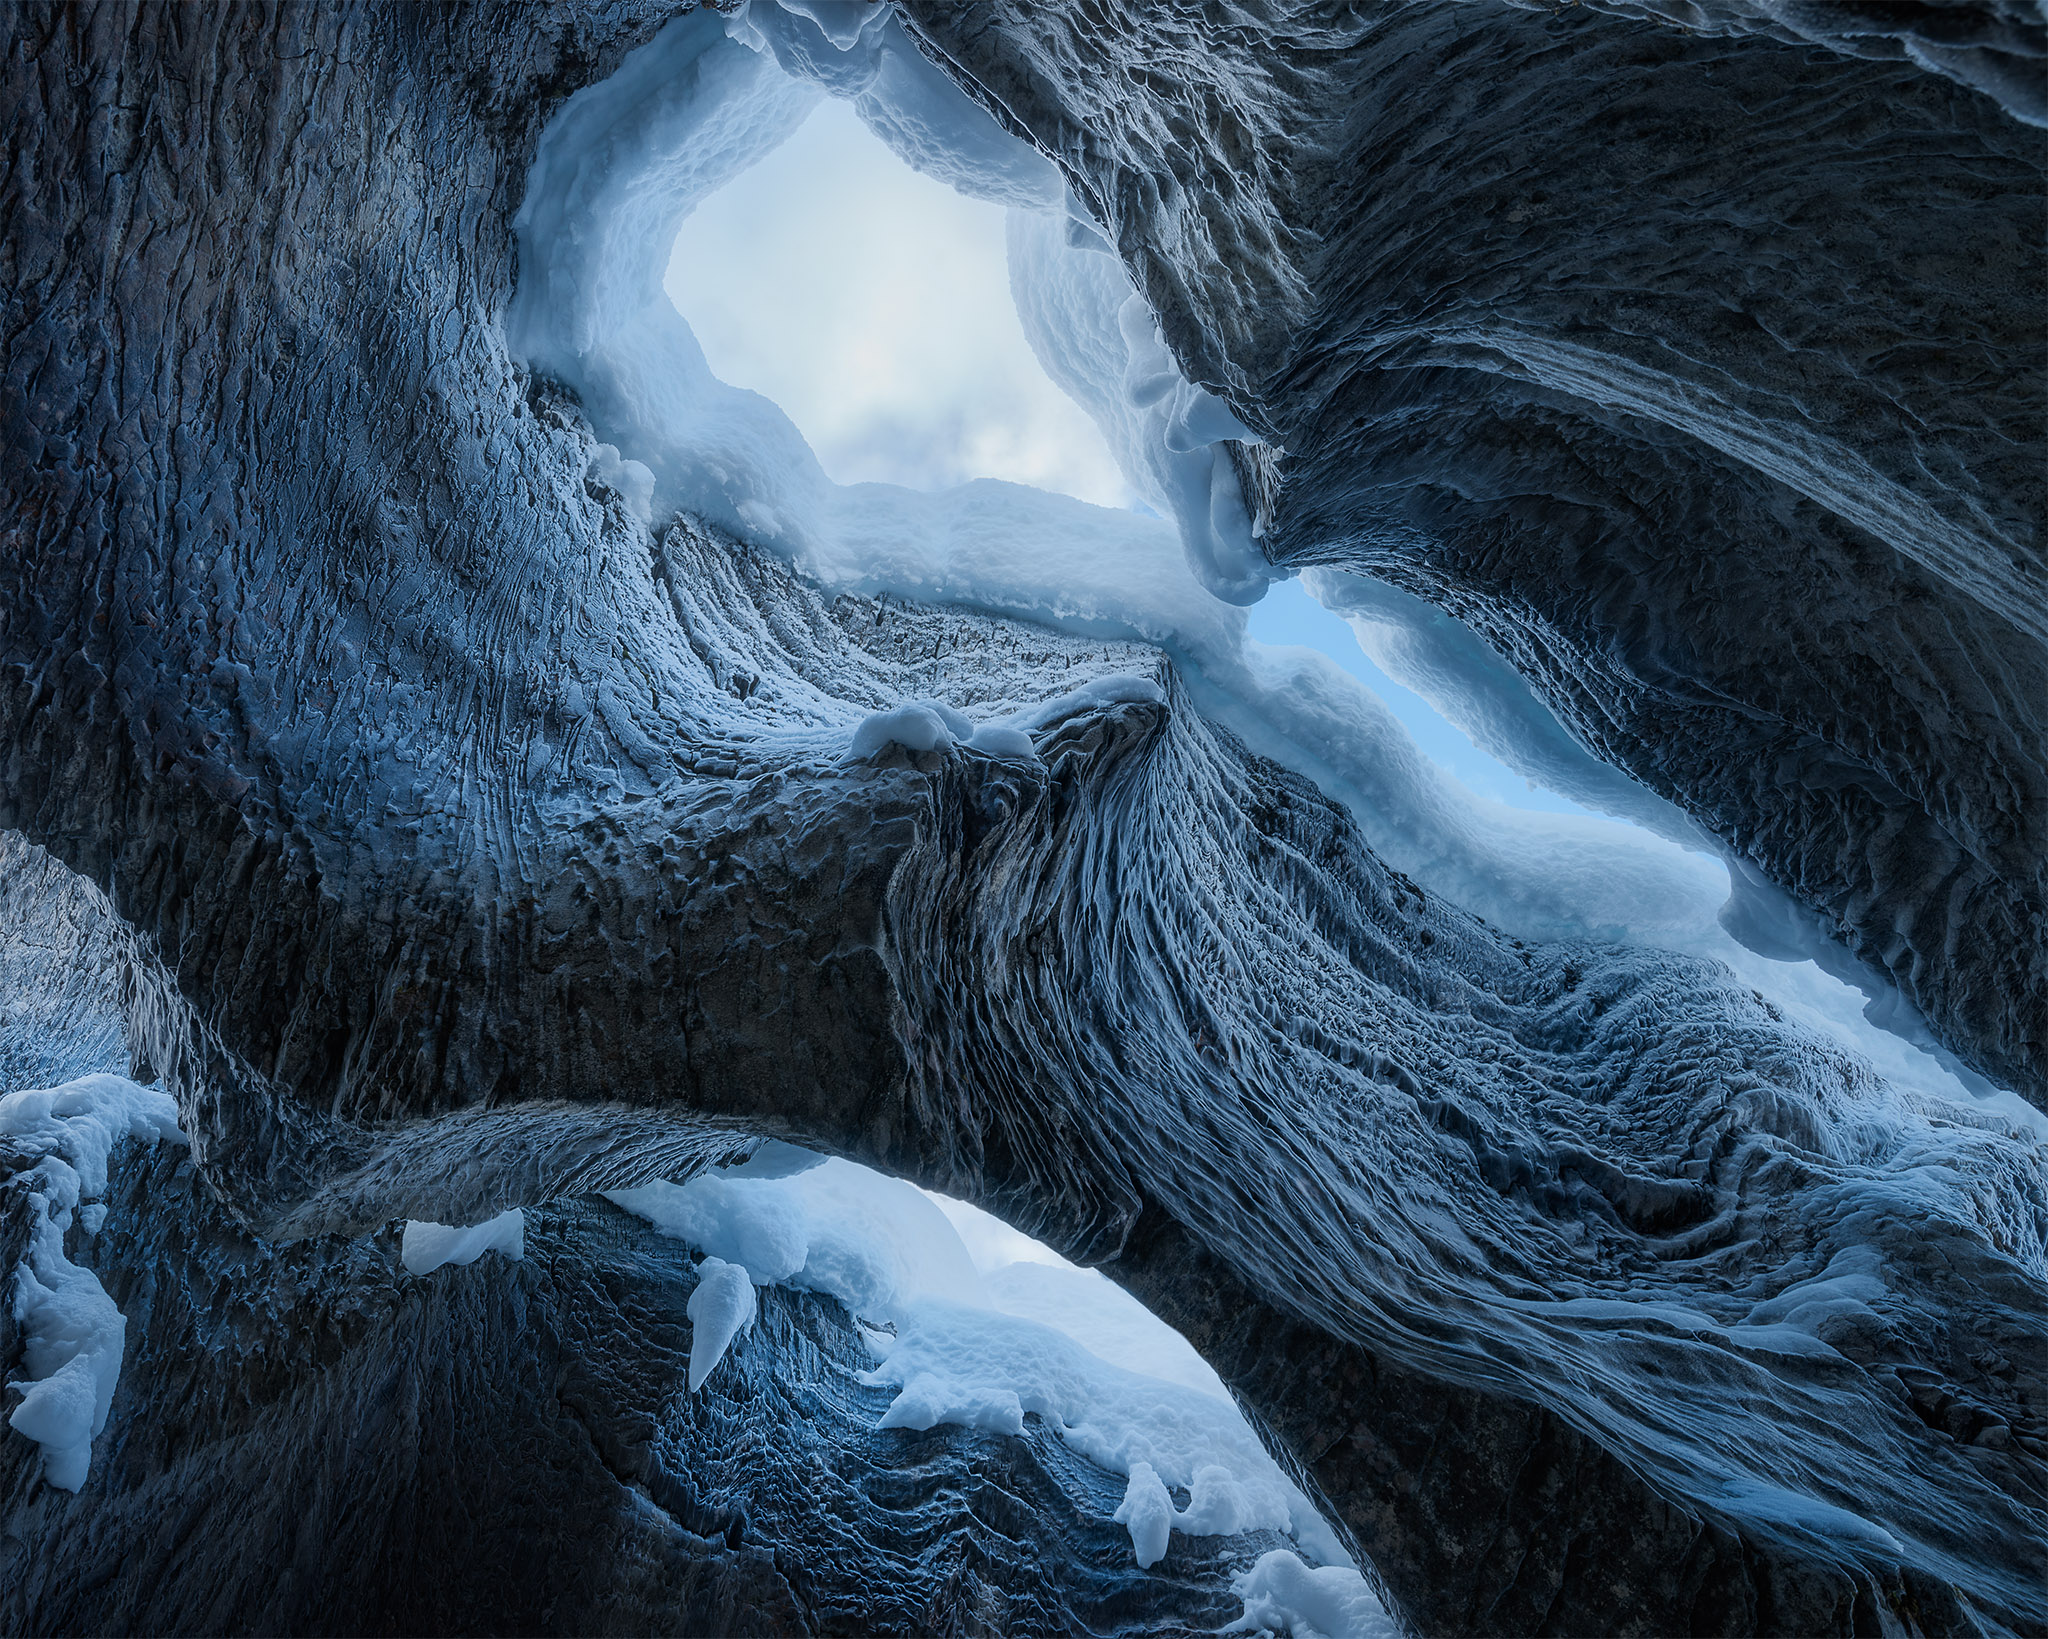 Landscape Photography of a rock formation at Natural Bridge near Emerald Lake in Yoho National Park, British Columbia